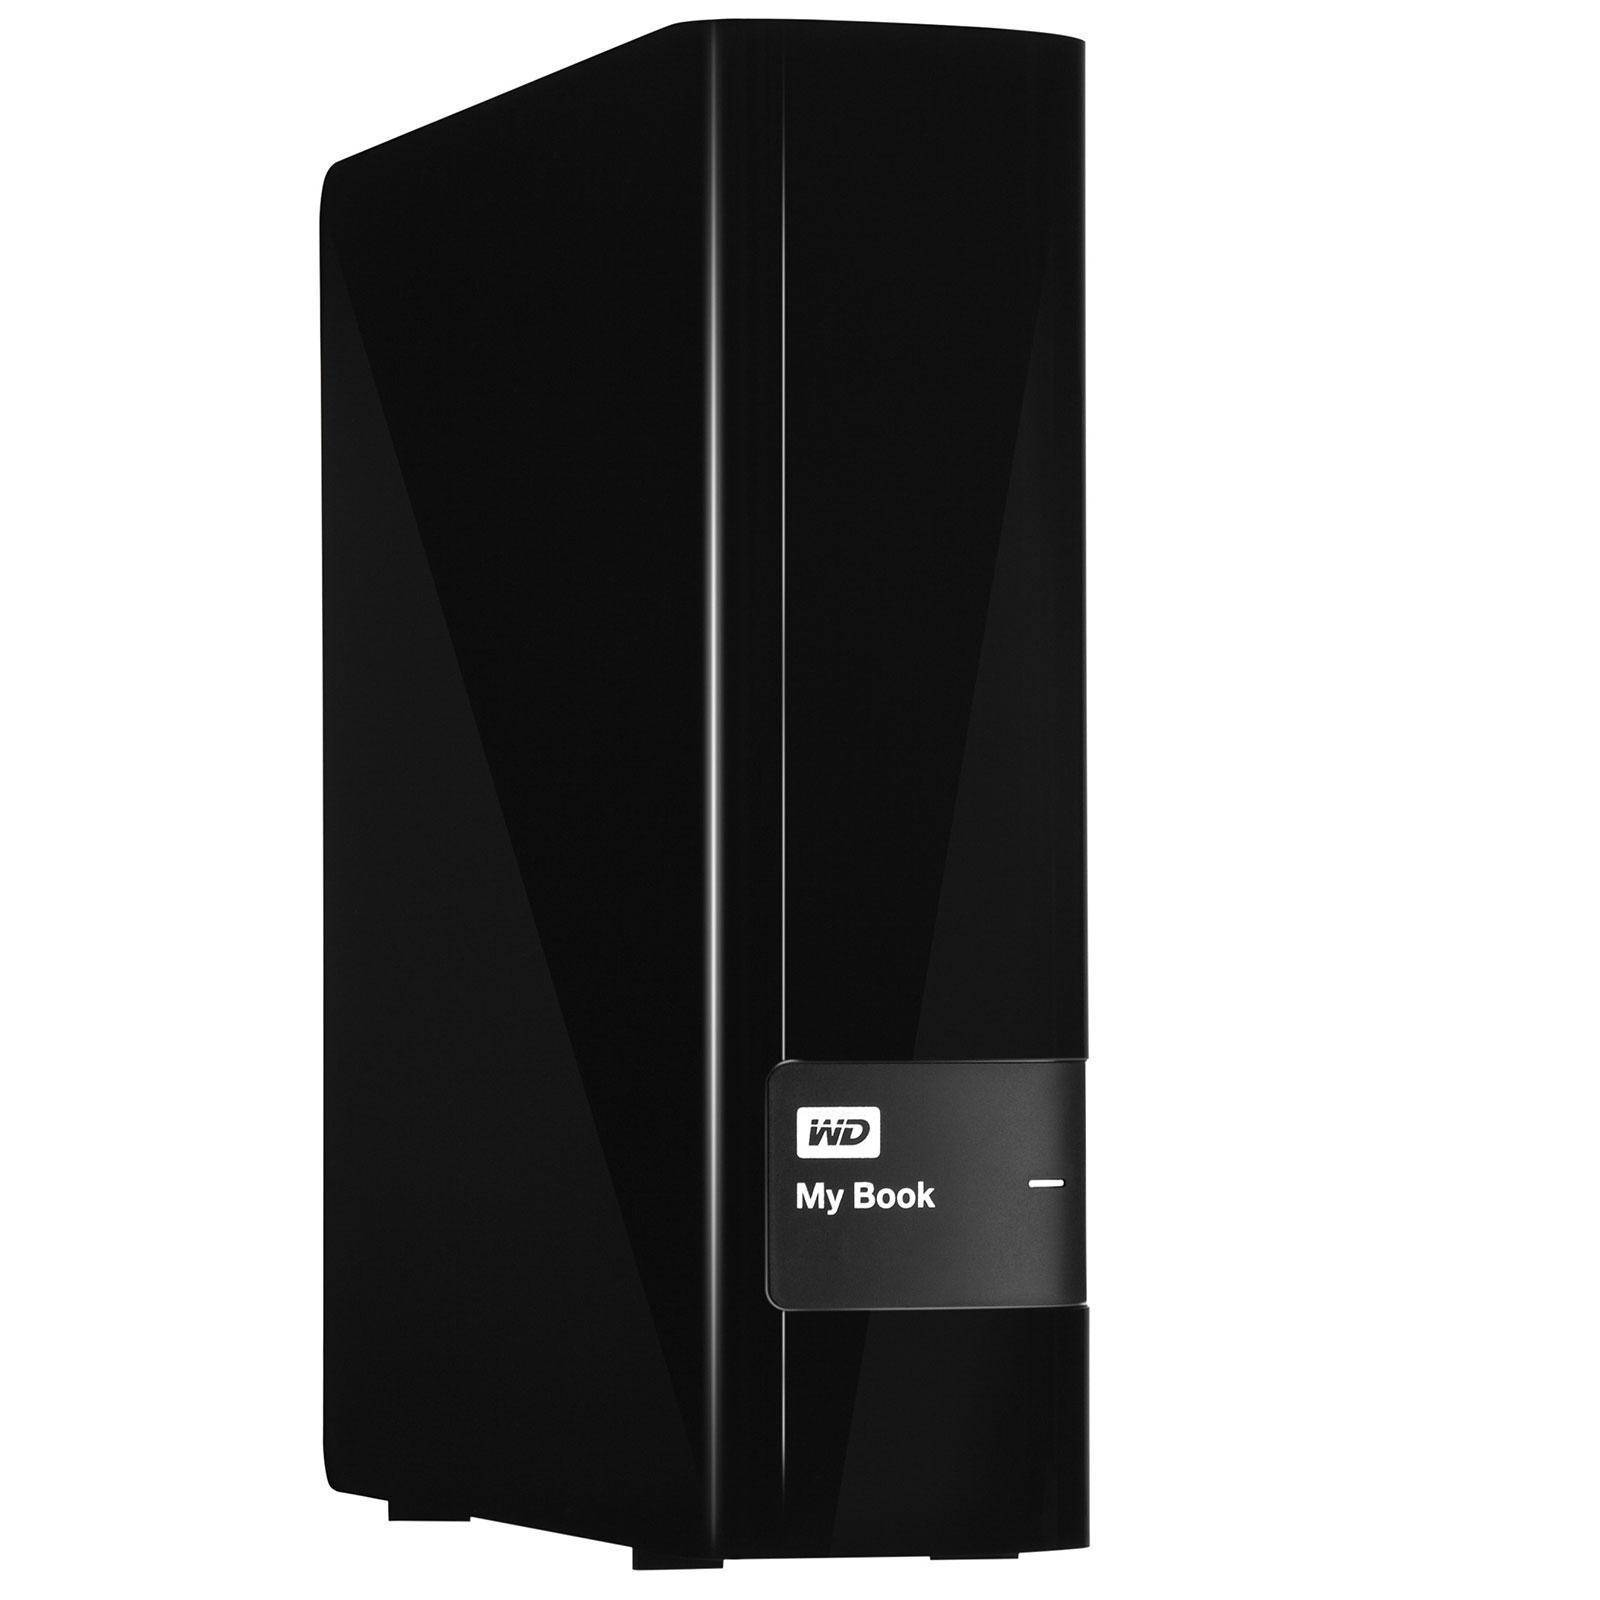 Western Digital Disque dur externe WD My Book 4 To (USB 3.0) pour Mac